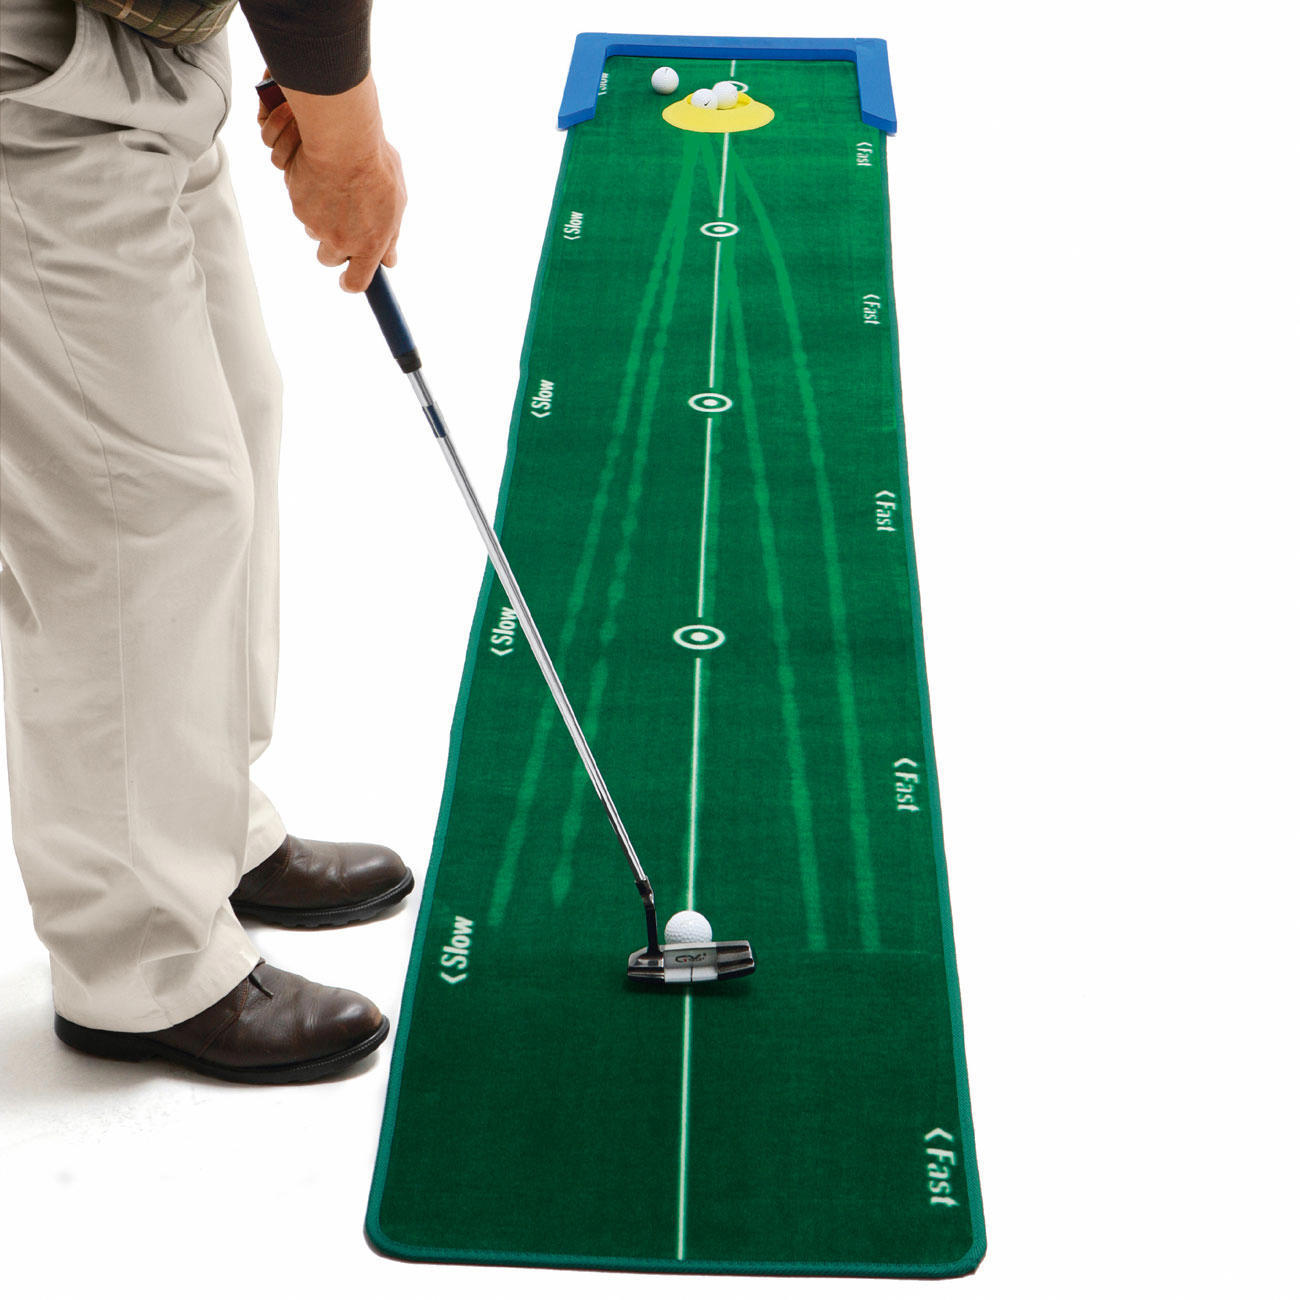 Carrelage Design tapis putting : Best Tracku201d Putting Mat So easy to create countless practice ...